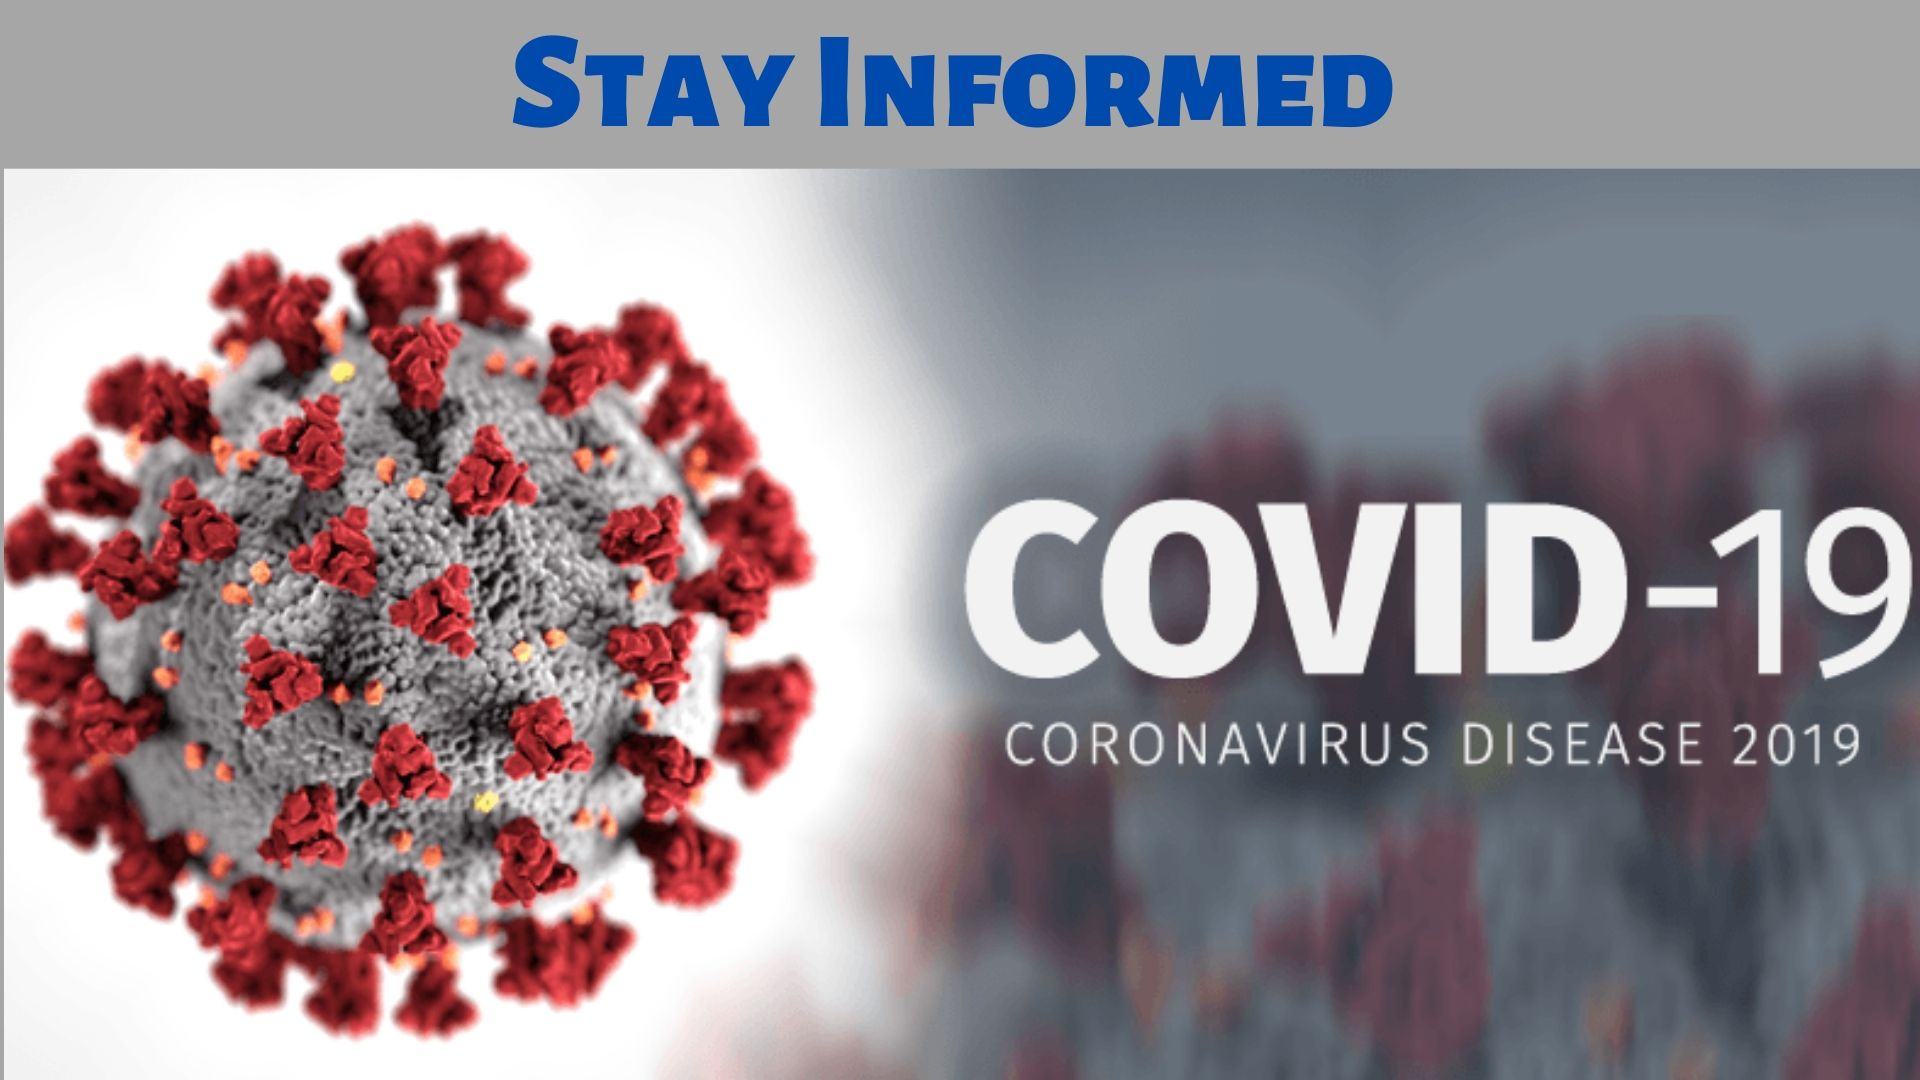 Stay Informed Covid-19